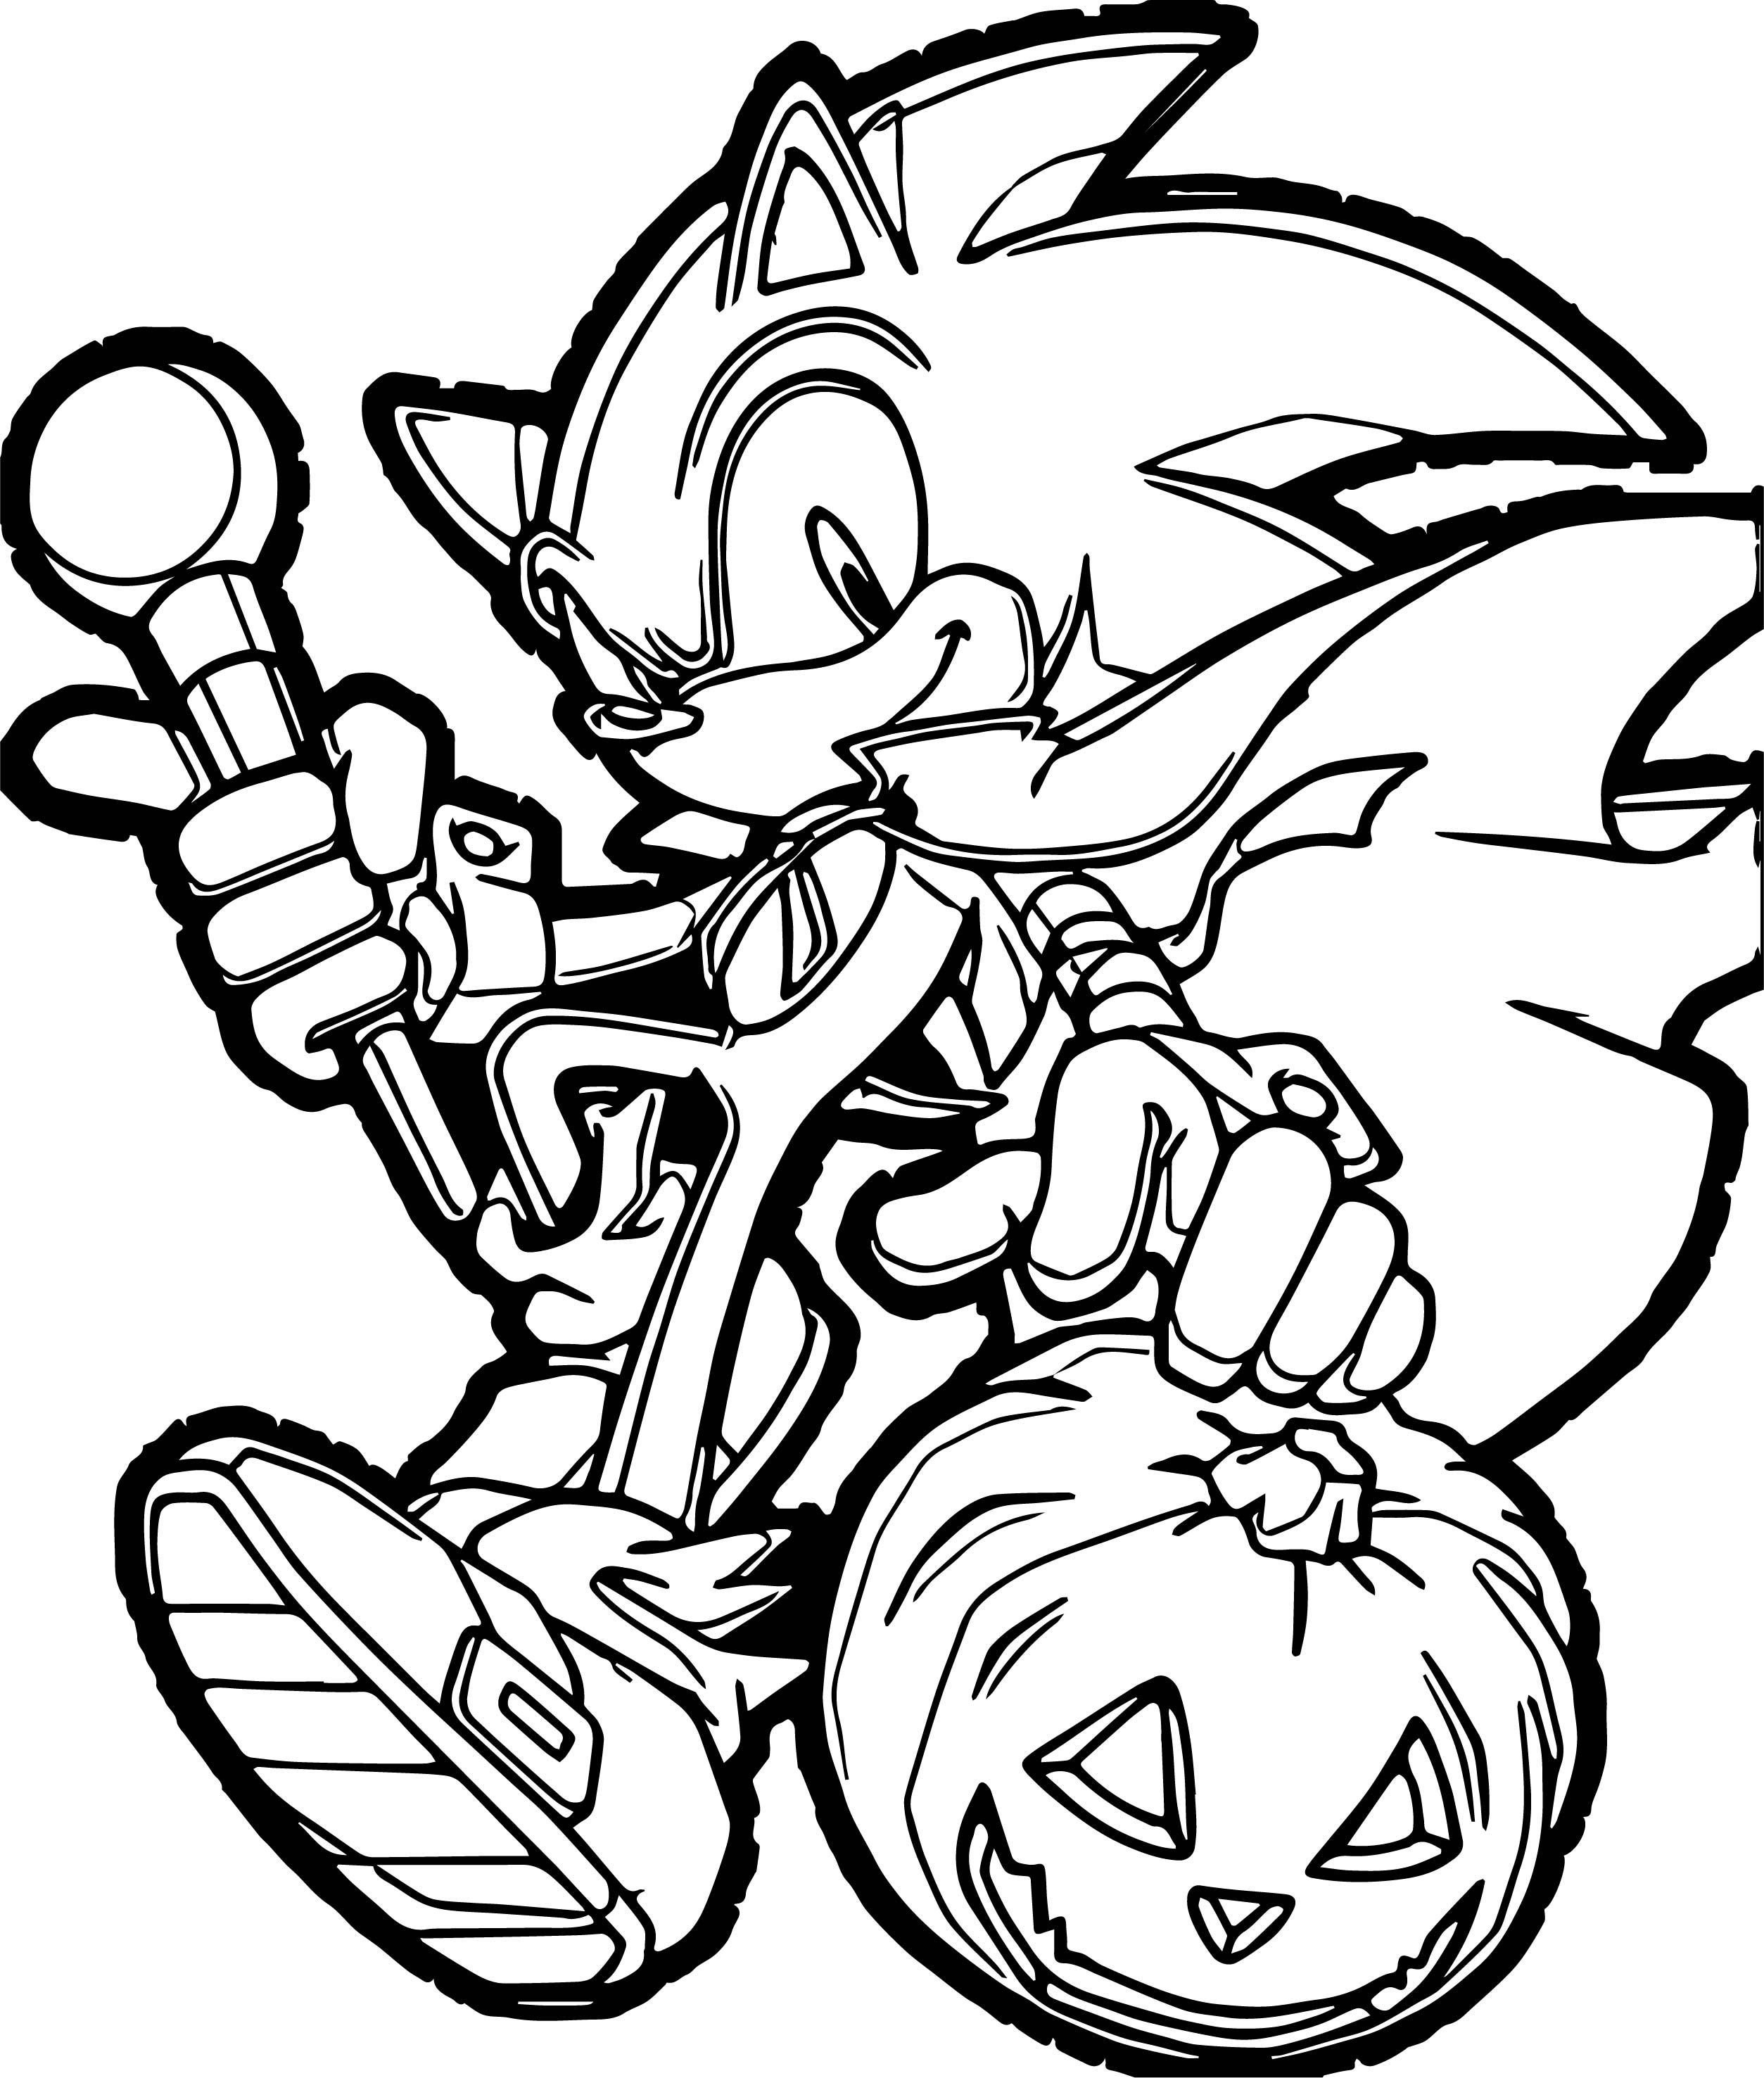 Sonic Halloween Coloring Pages Sonic Halloween Coloring Pages Pumpkin Coloring Pages Monster Coloring Pages Halloween Coloring Pages